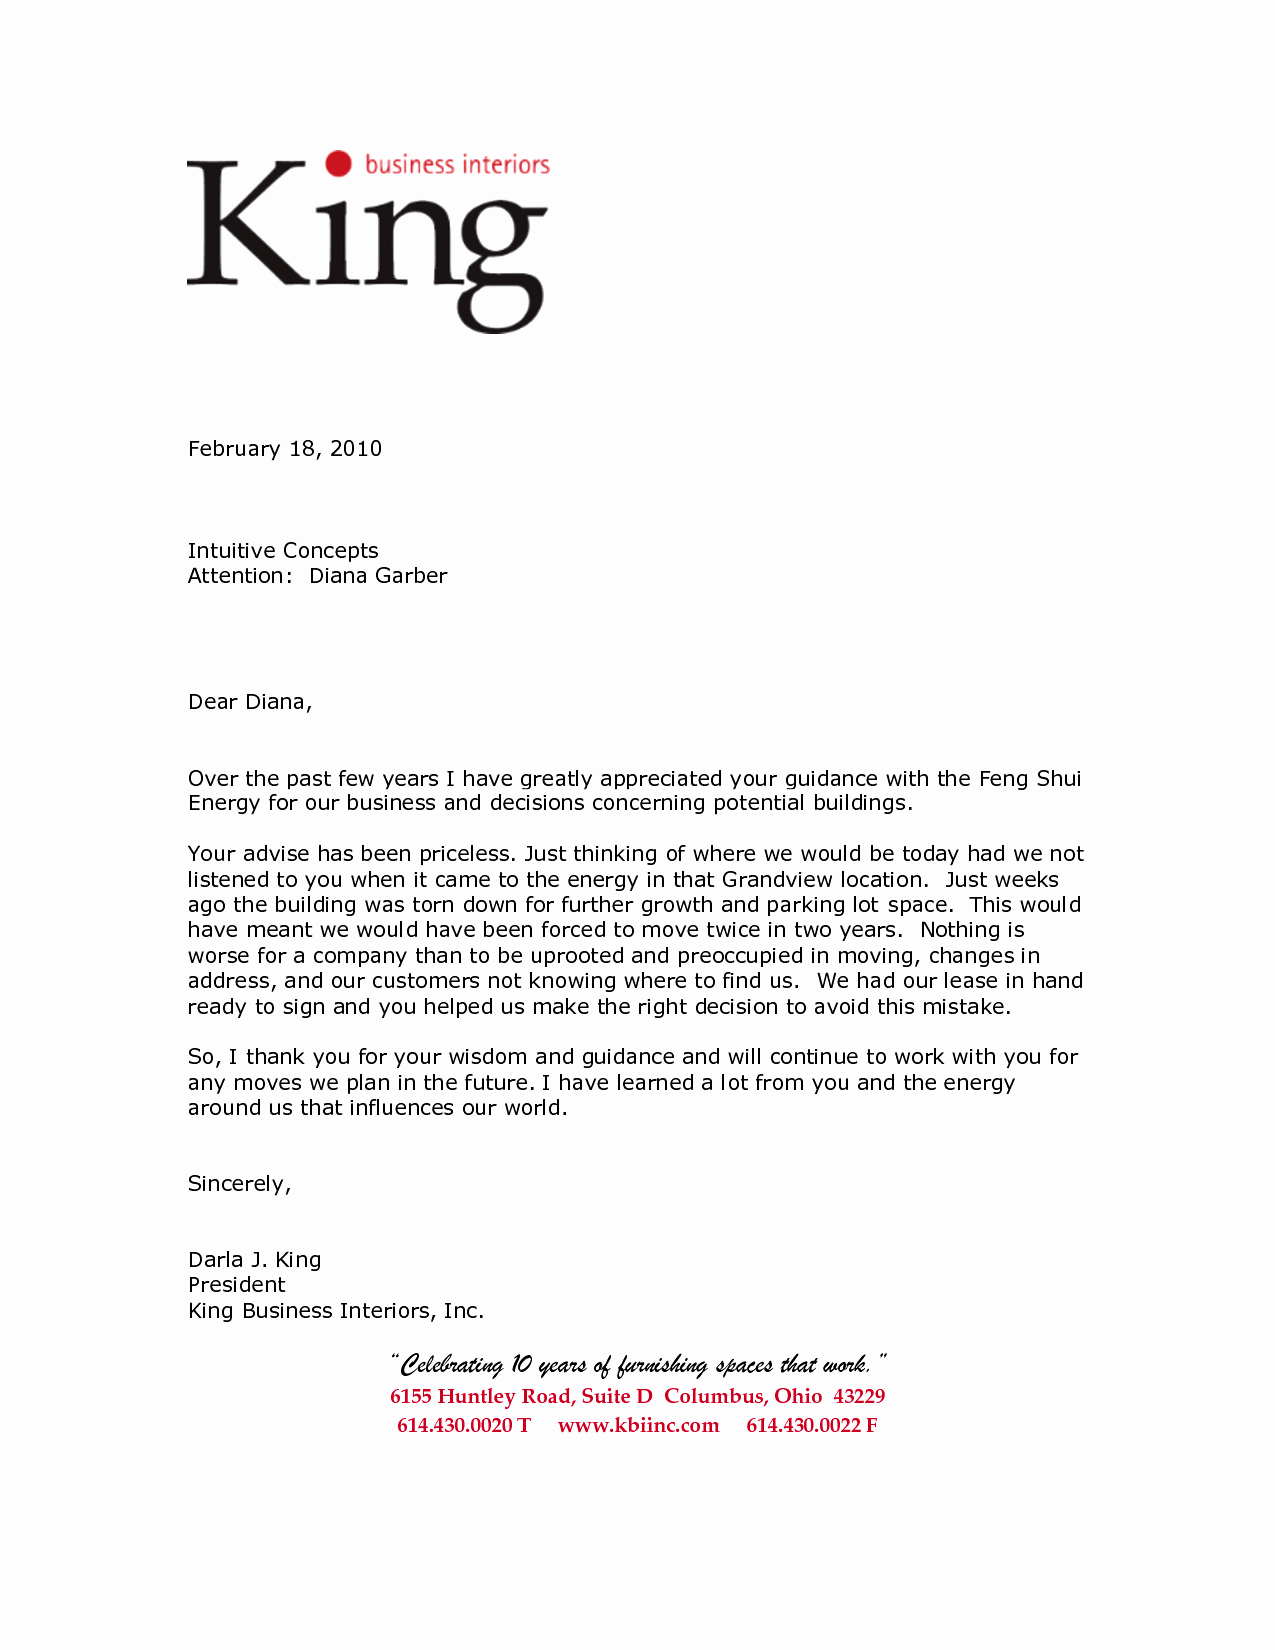 Business Letter format Template Word Inspirational Business Reference Letter Template Mughals